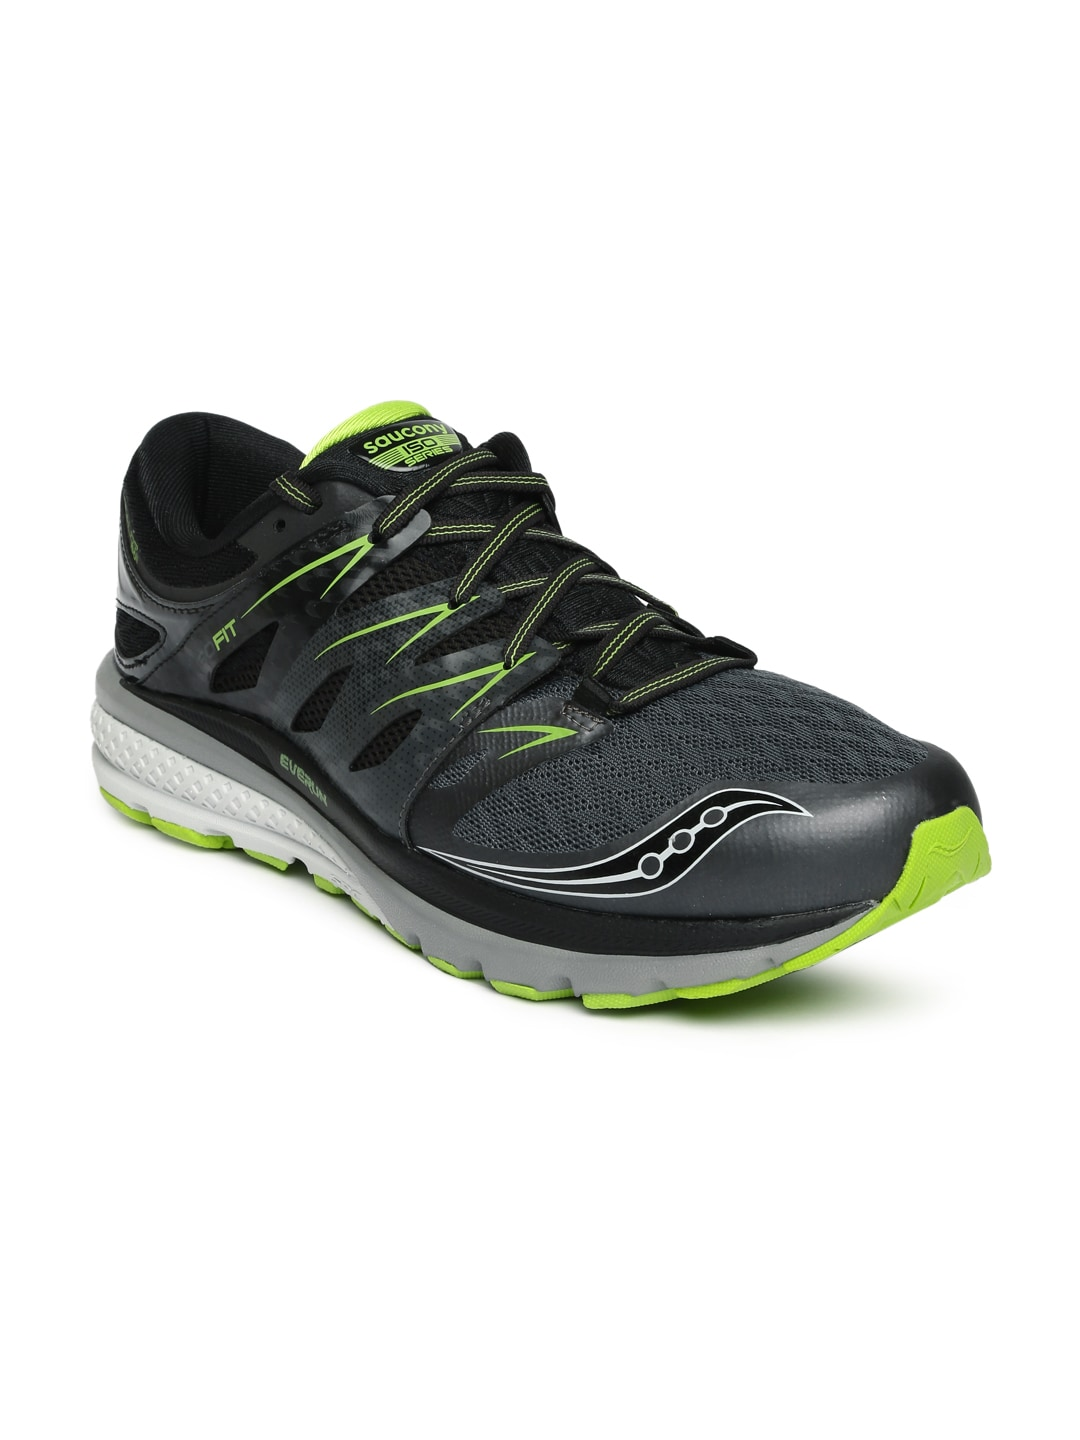 dbf81839b9ee Saucony Shoes - Buy Latest Saucony Shoes Online in India